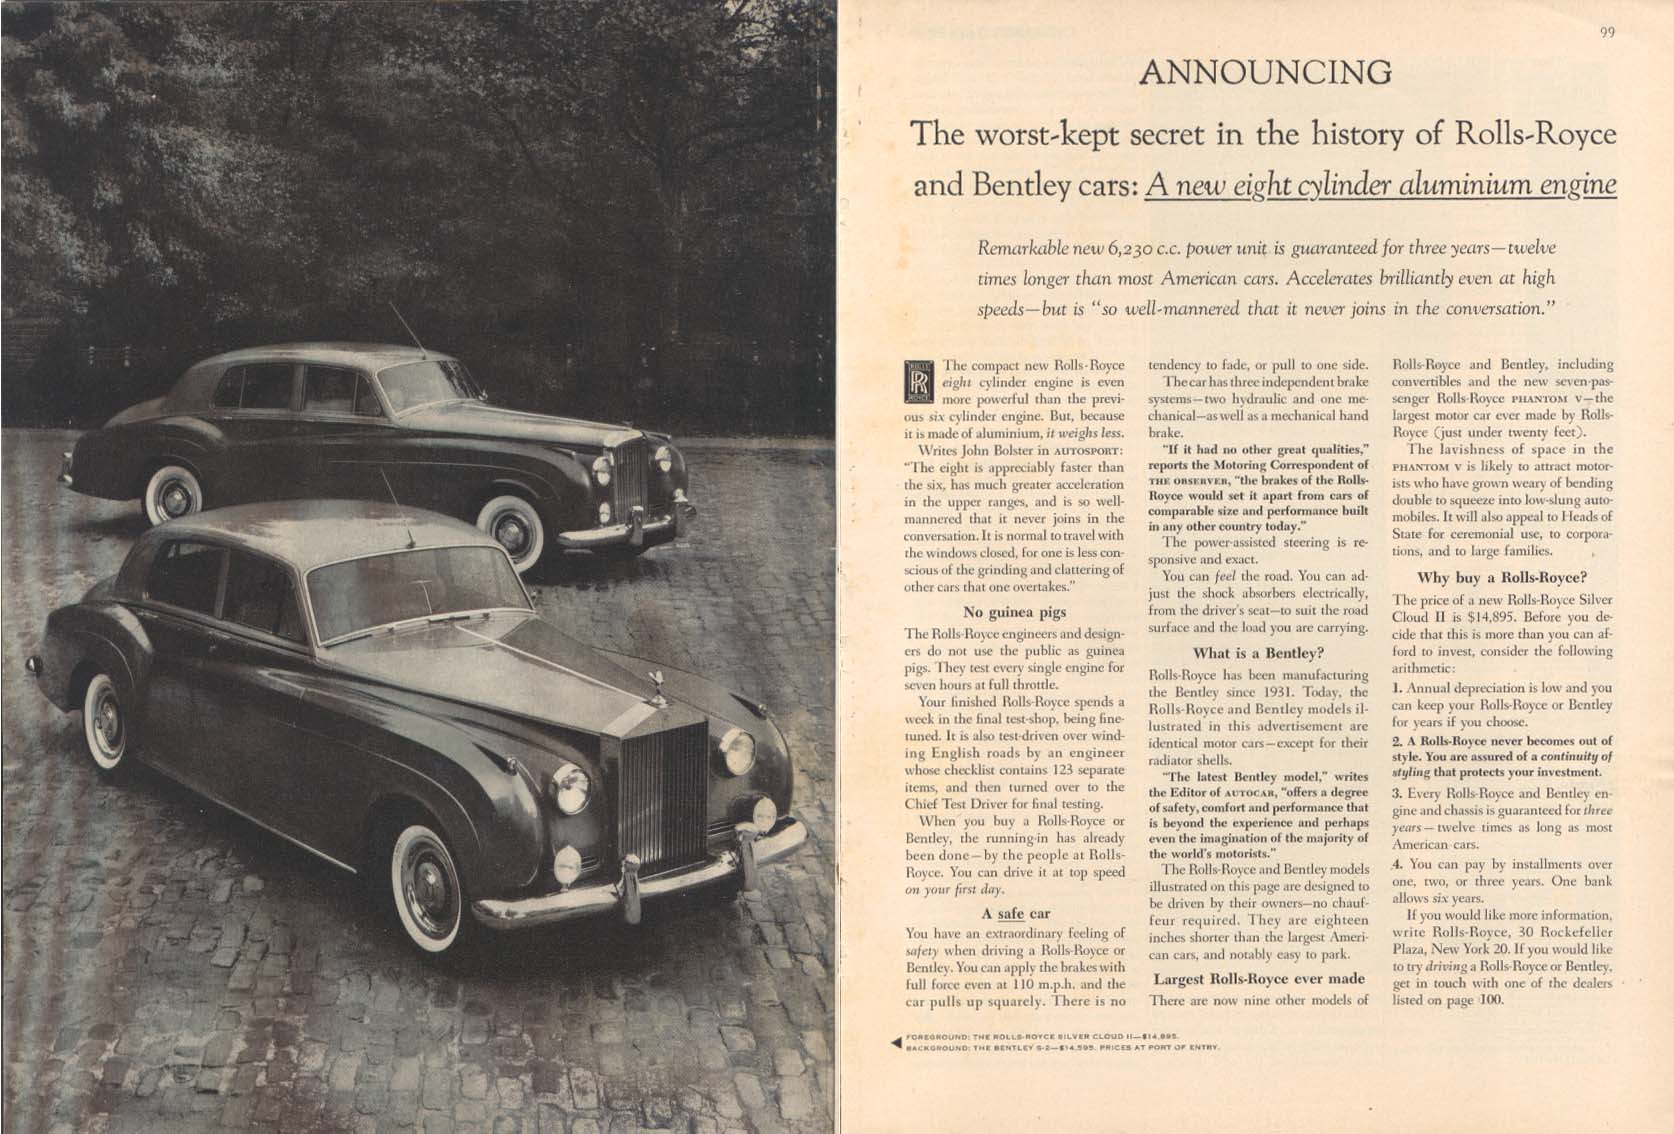 New 8-cylinder aluminum engine Rolls-Royce ad 1959